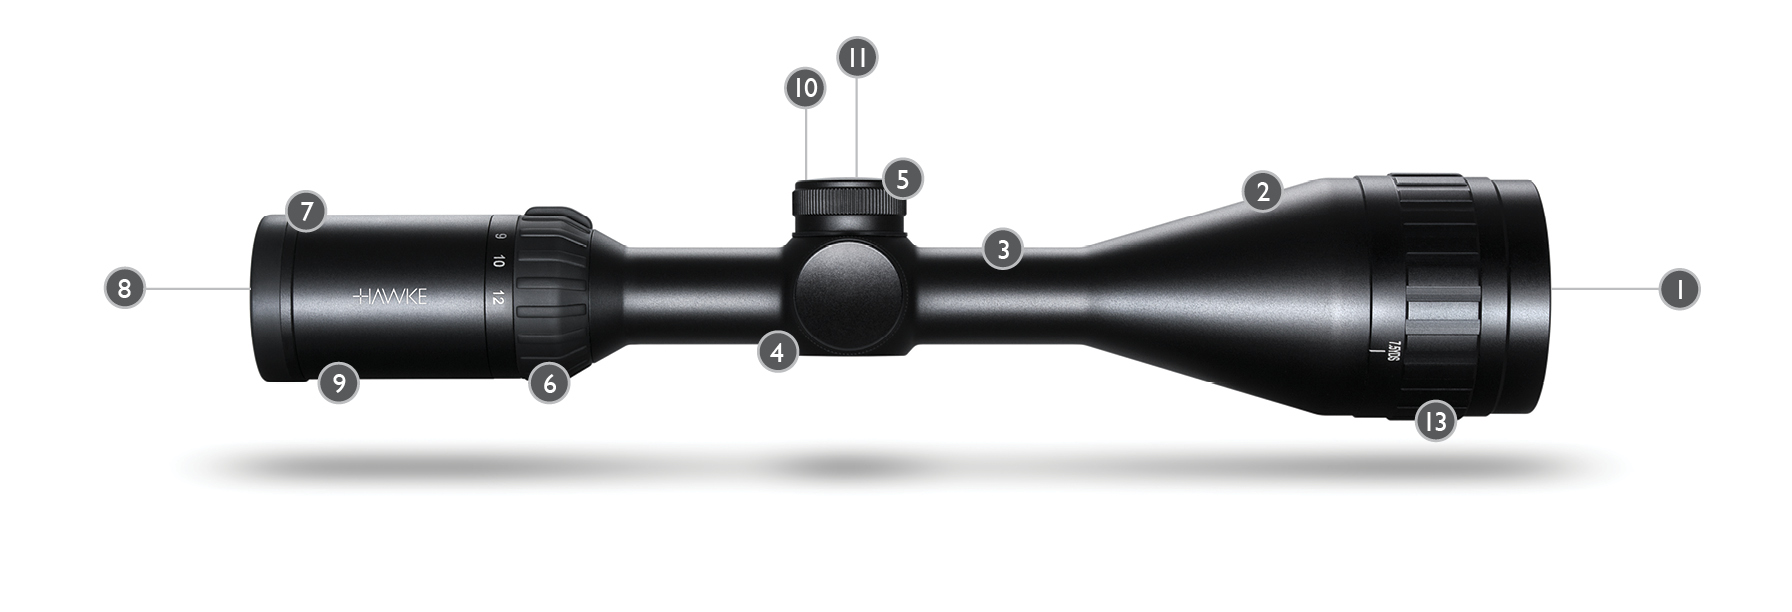 Adjustable objective (AO) riflescope